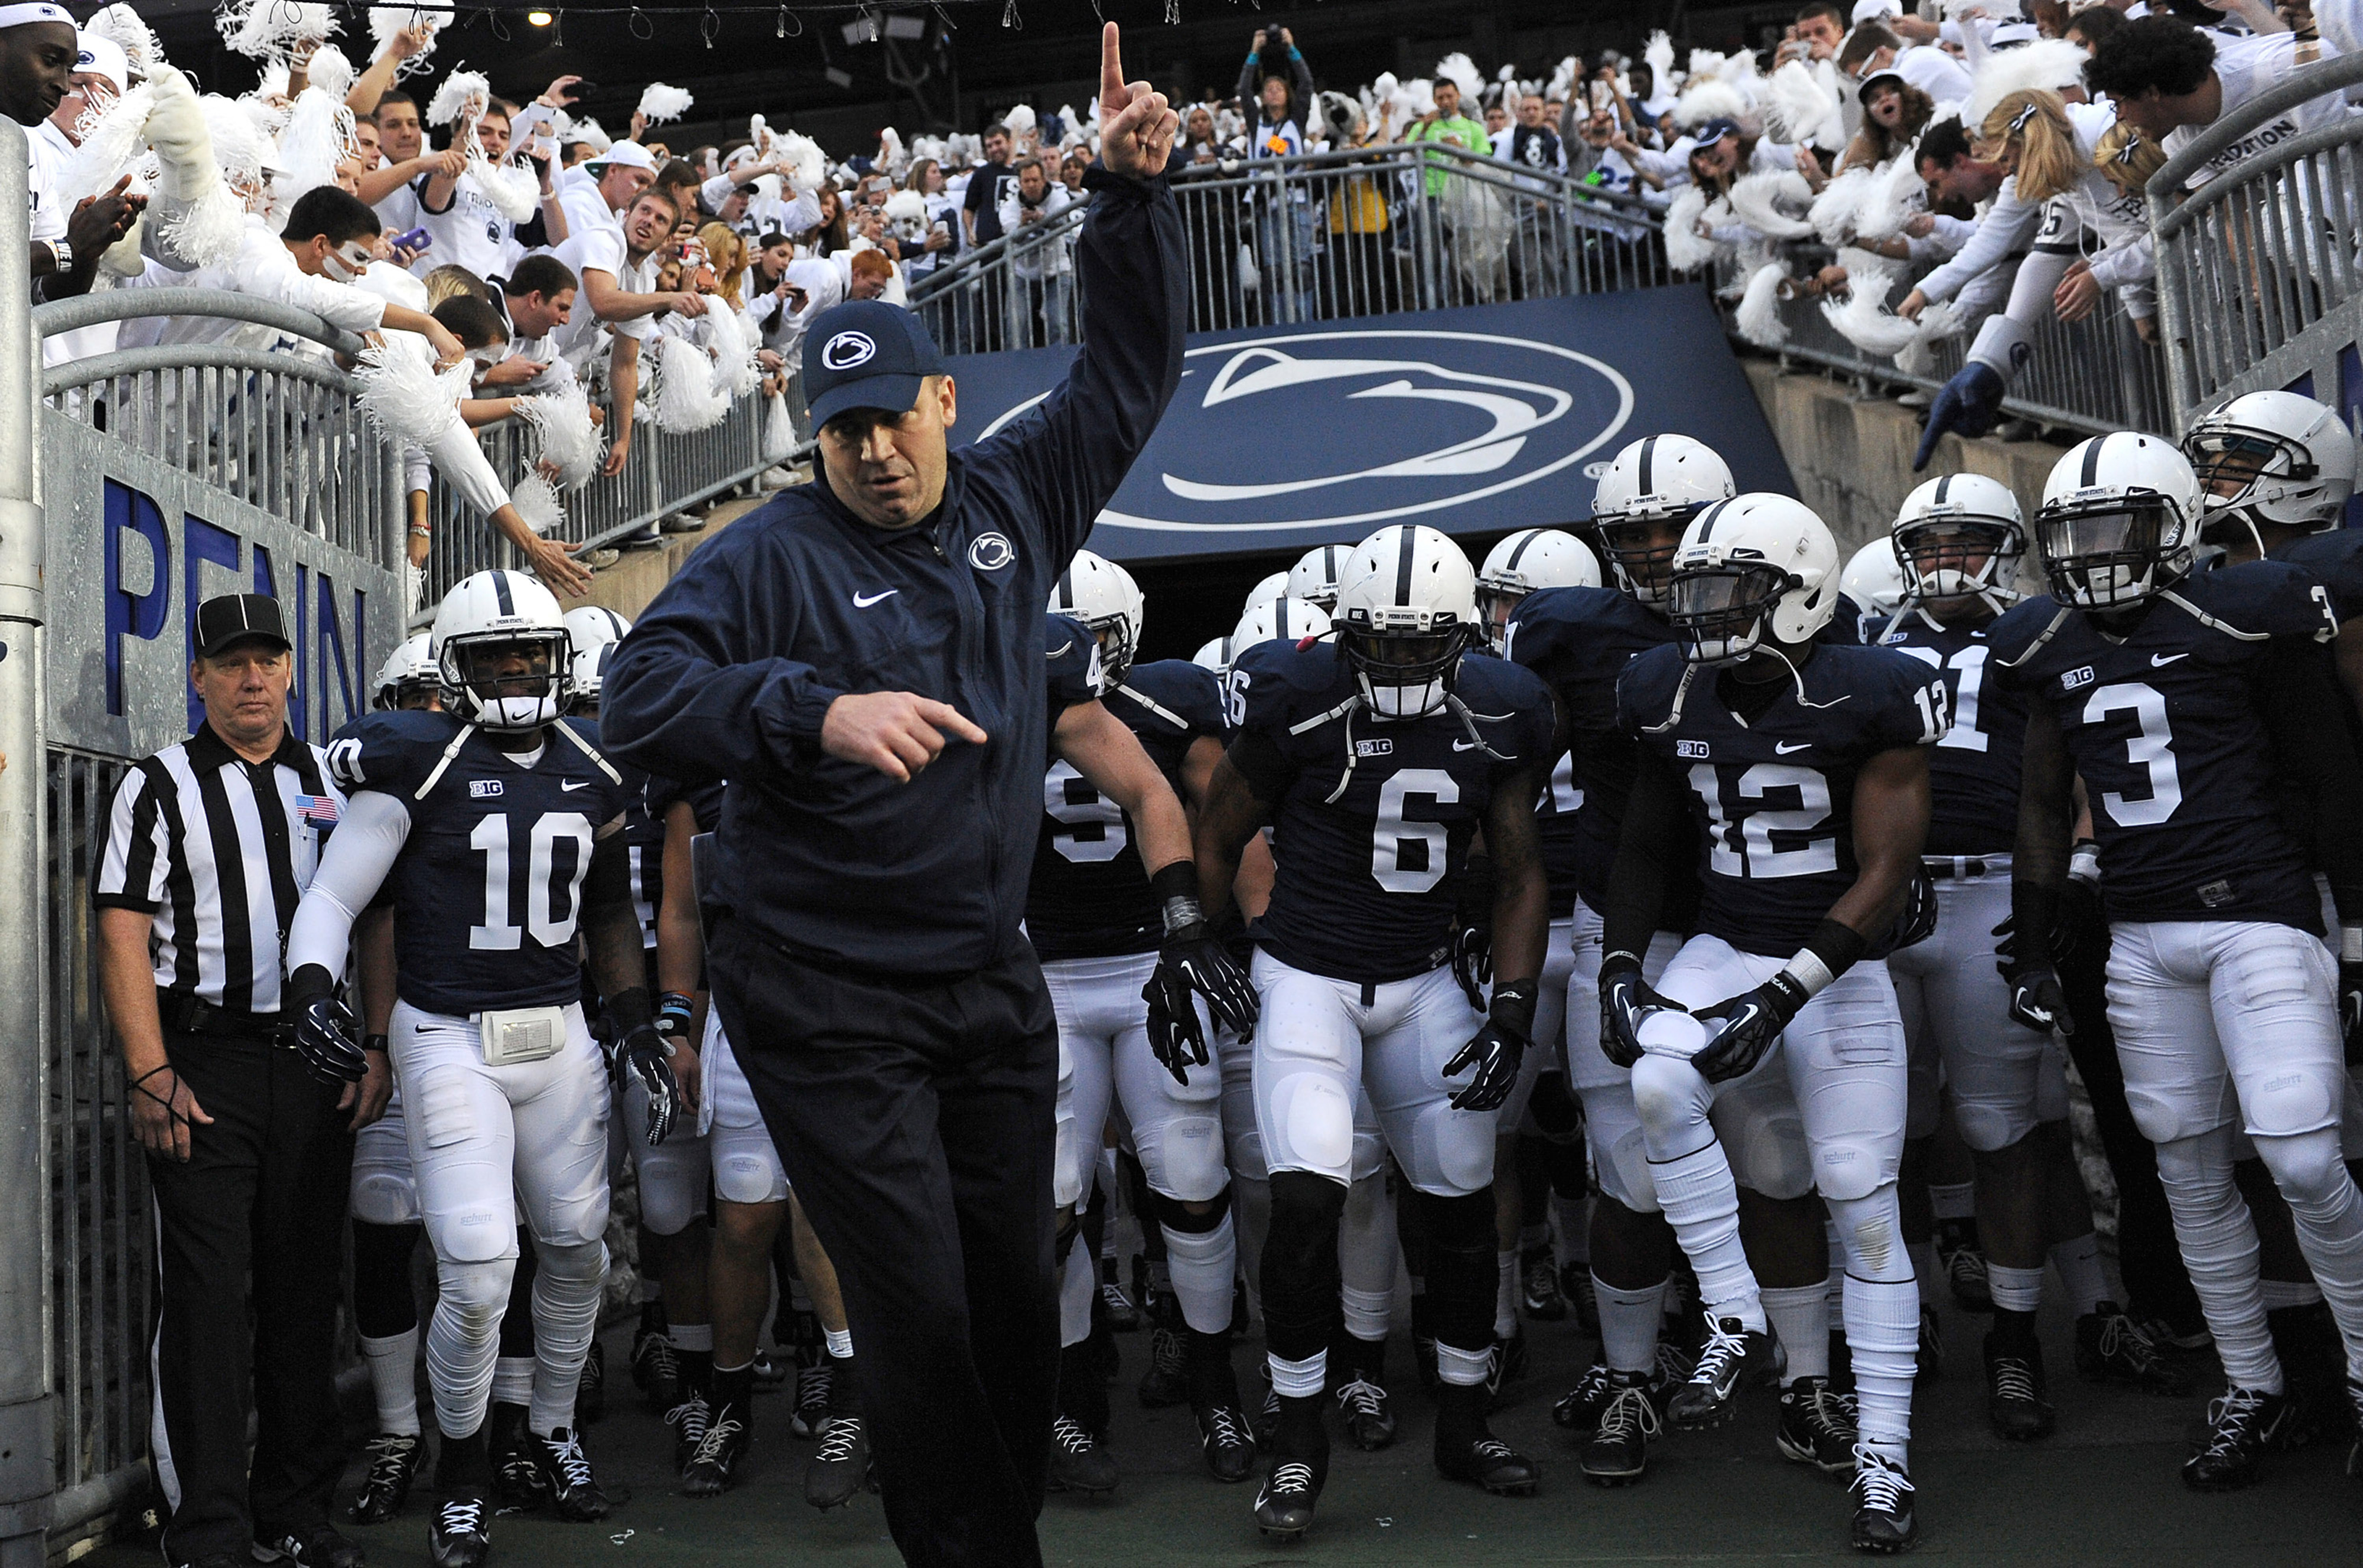 Penn State football's NCAA scholarship sanctions being reduced